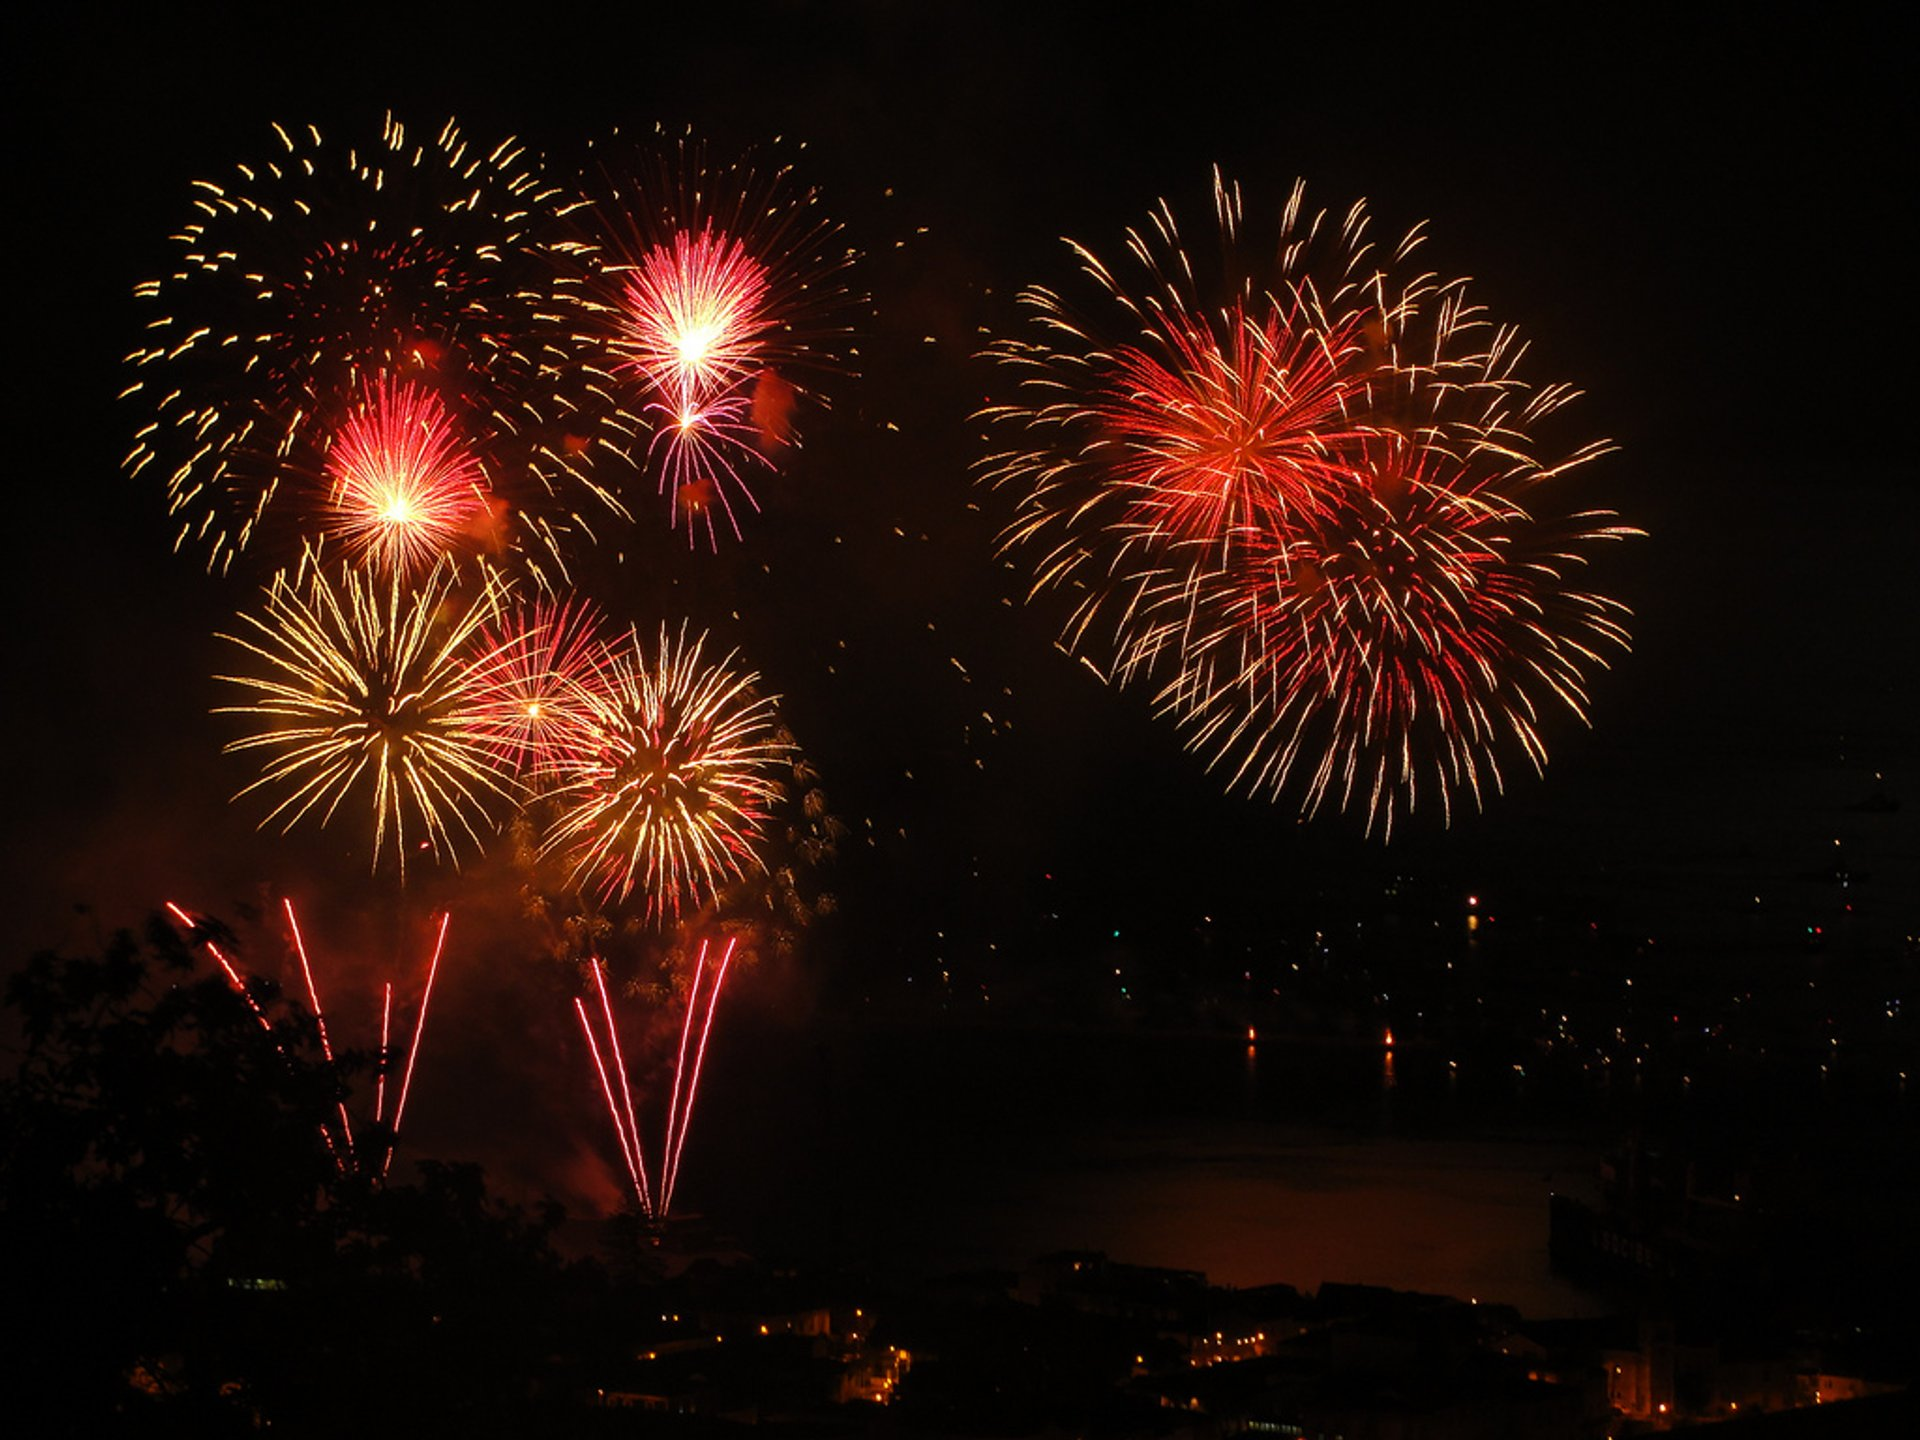 New Year Fireworks in Valparaiso in Chile - Best Season 2020